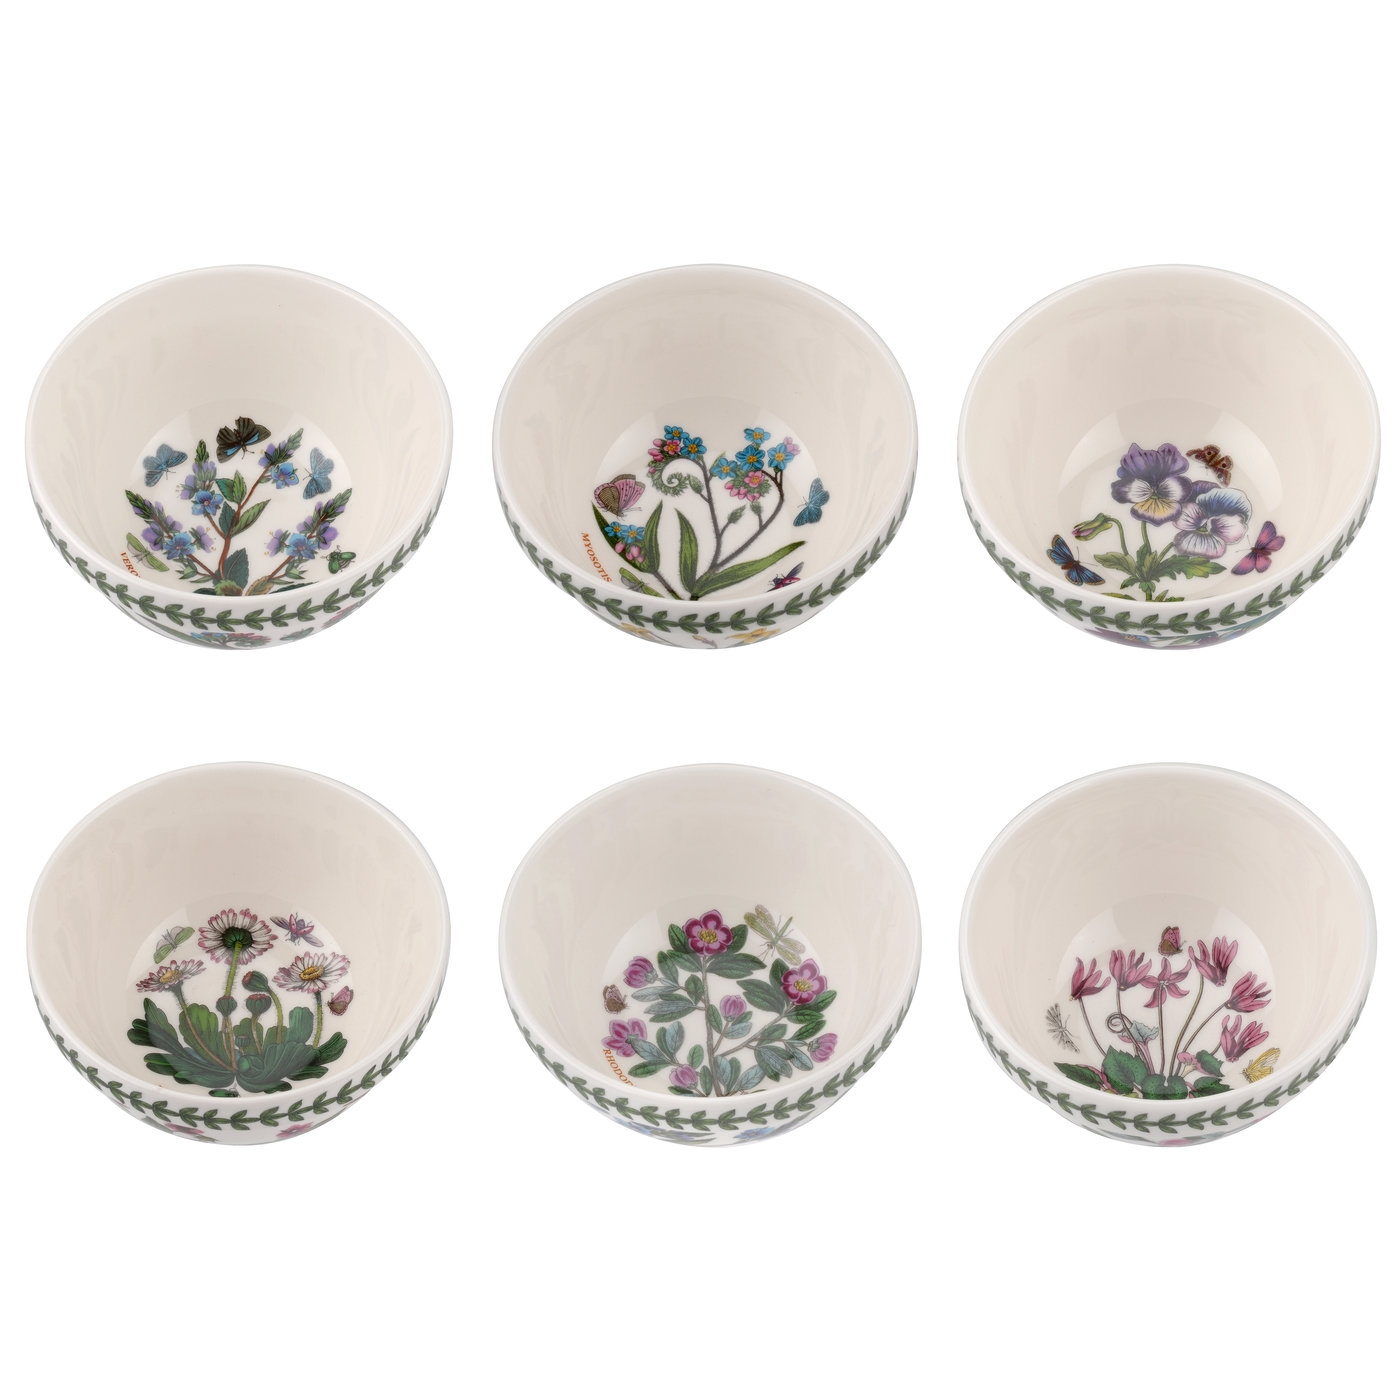 Portmeirion Botanic Garden 5 Inch Stacking Bowl Set of 6 (Assorted Motifs) image number 0